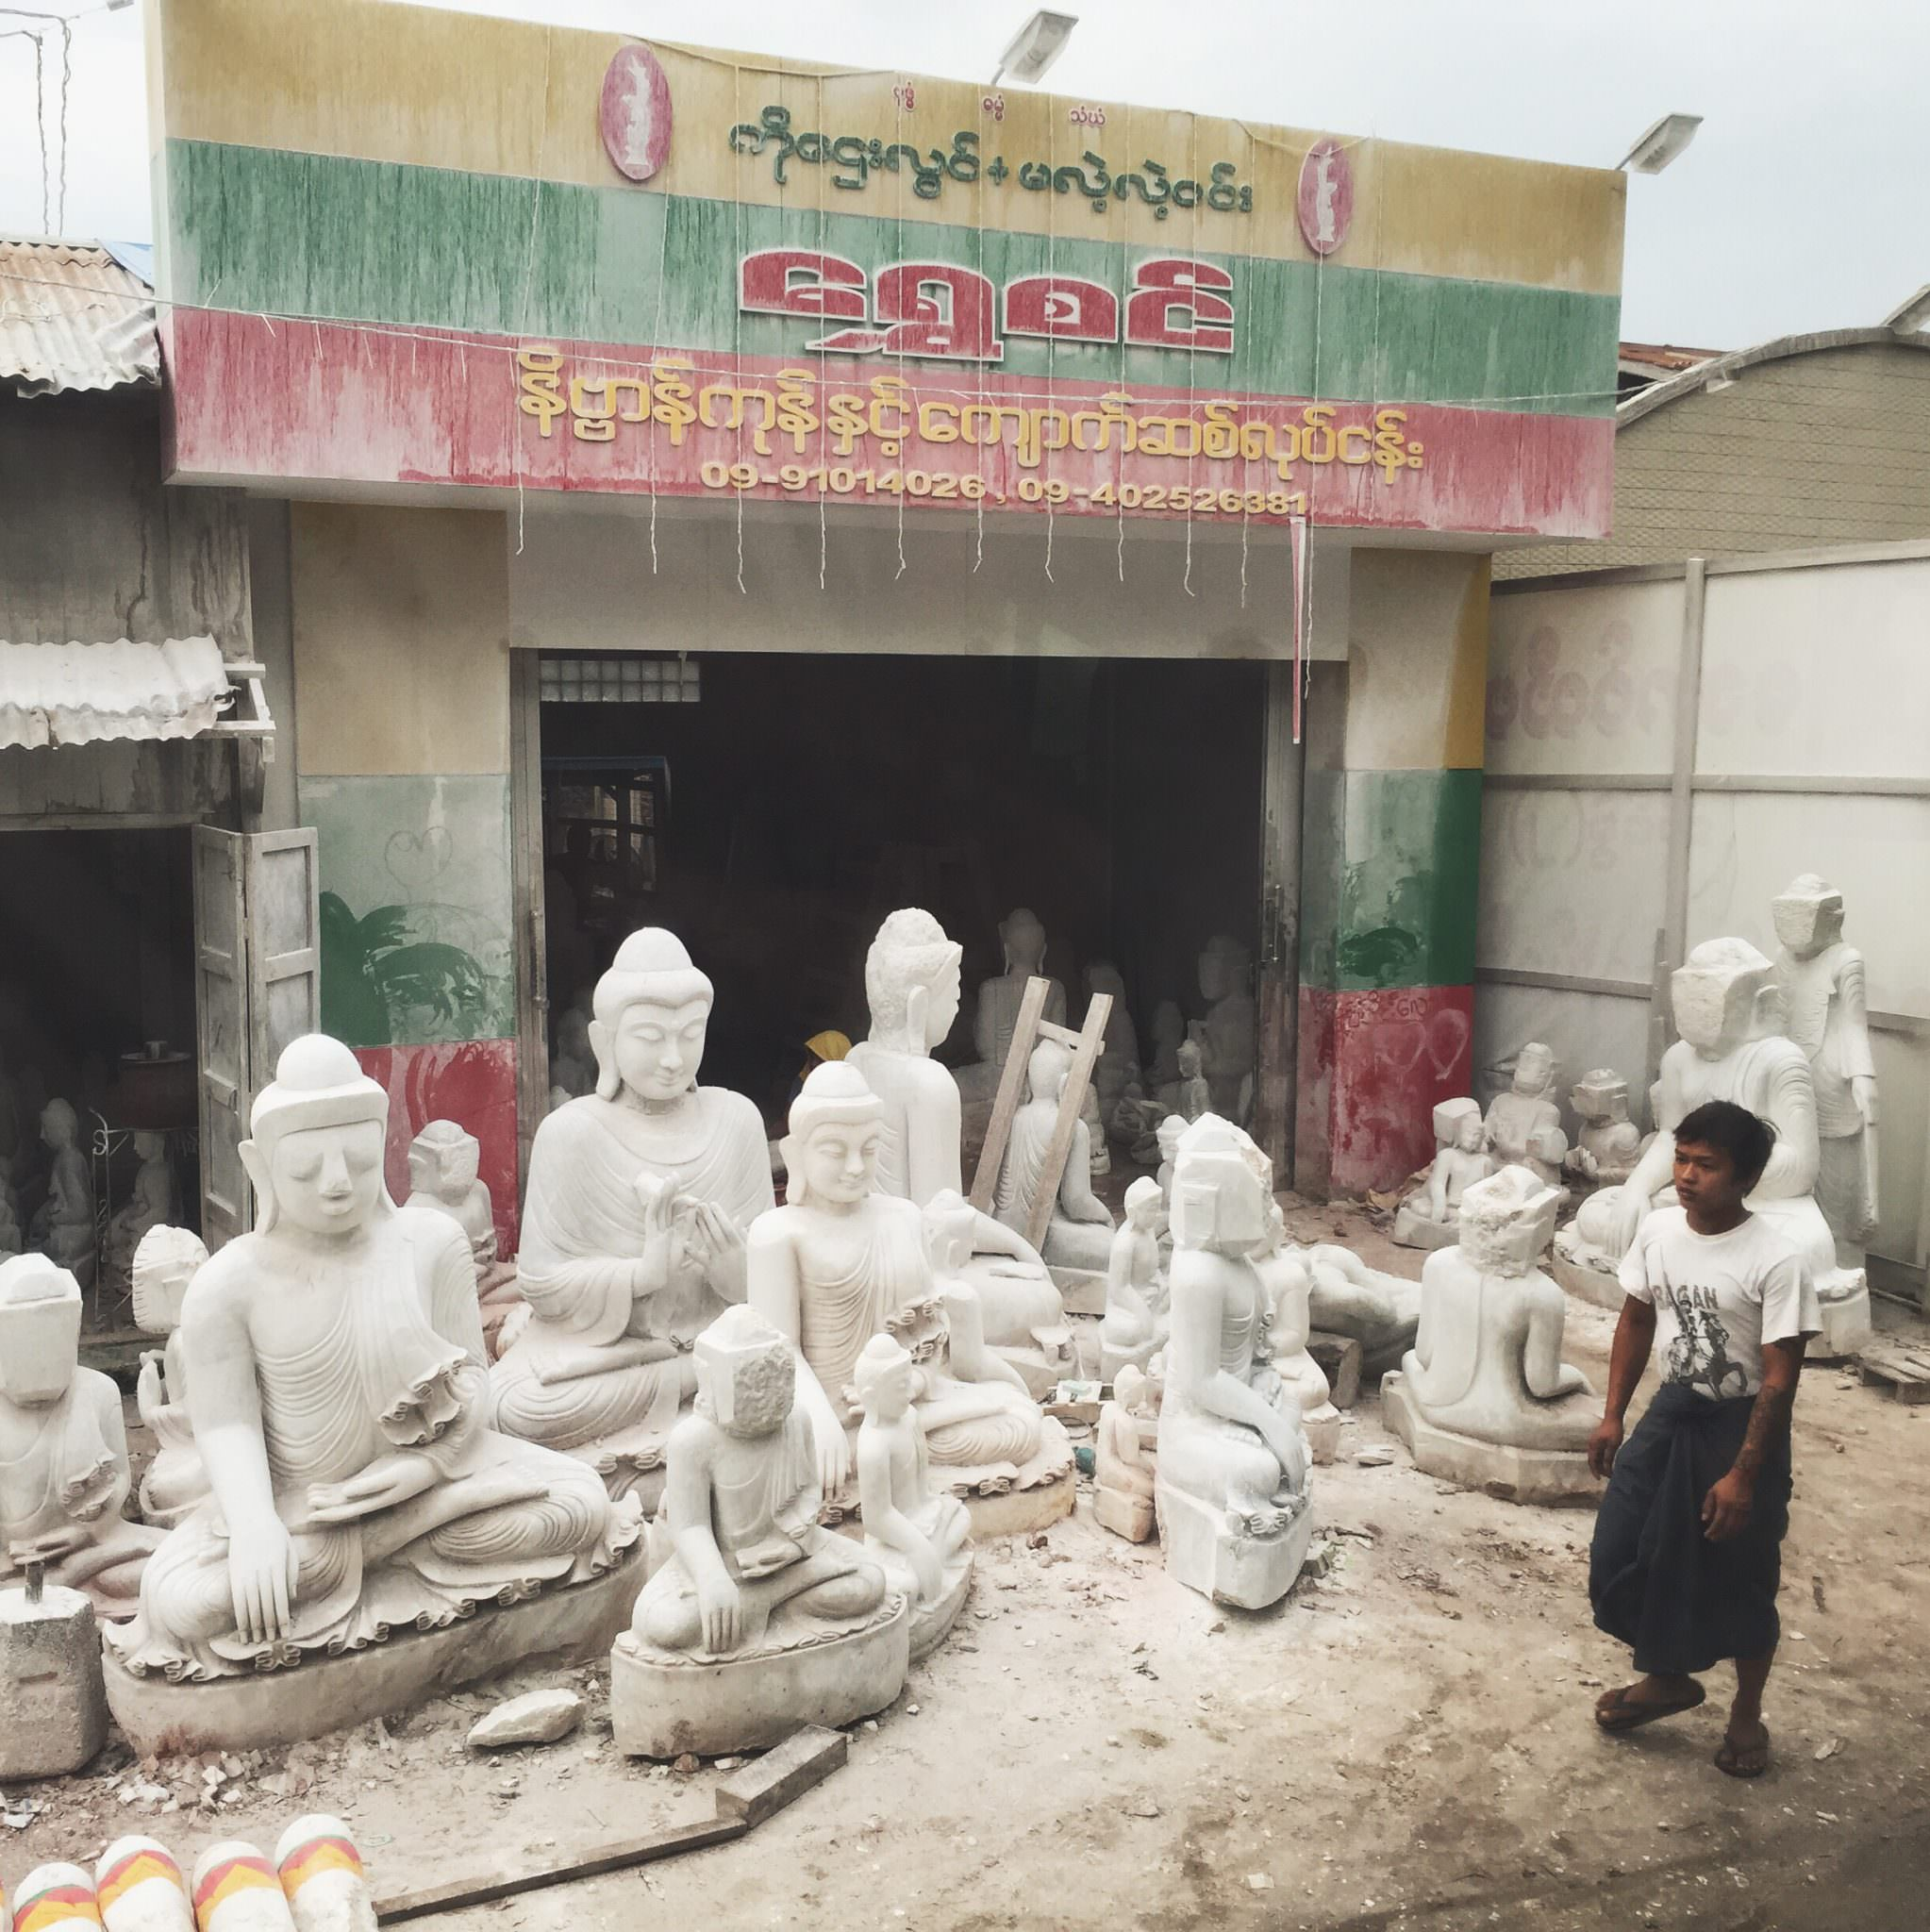 Do you see the Buddha statues with square faces? They are waiting for a master carver, the only person who is allowed to complete the sacred face. © 2015 Gail Jessen